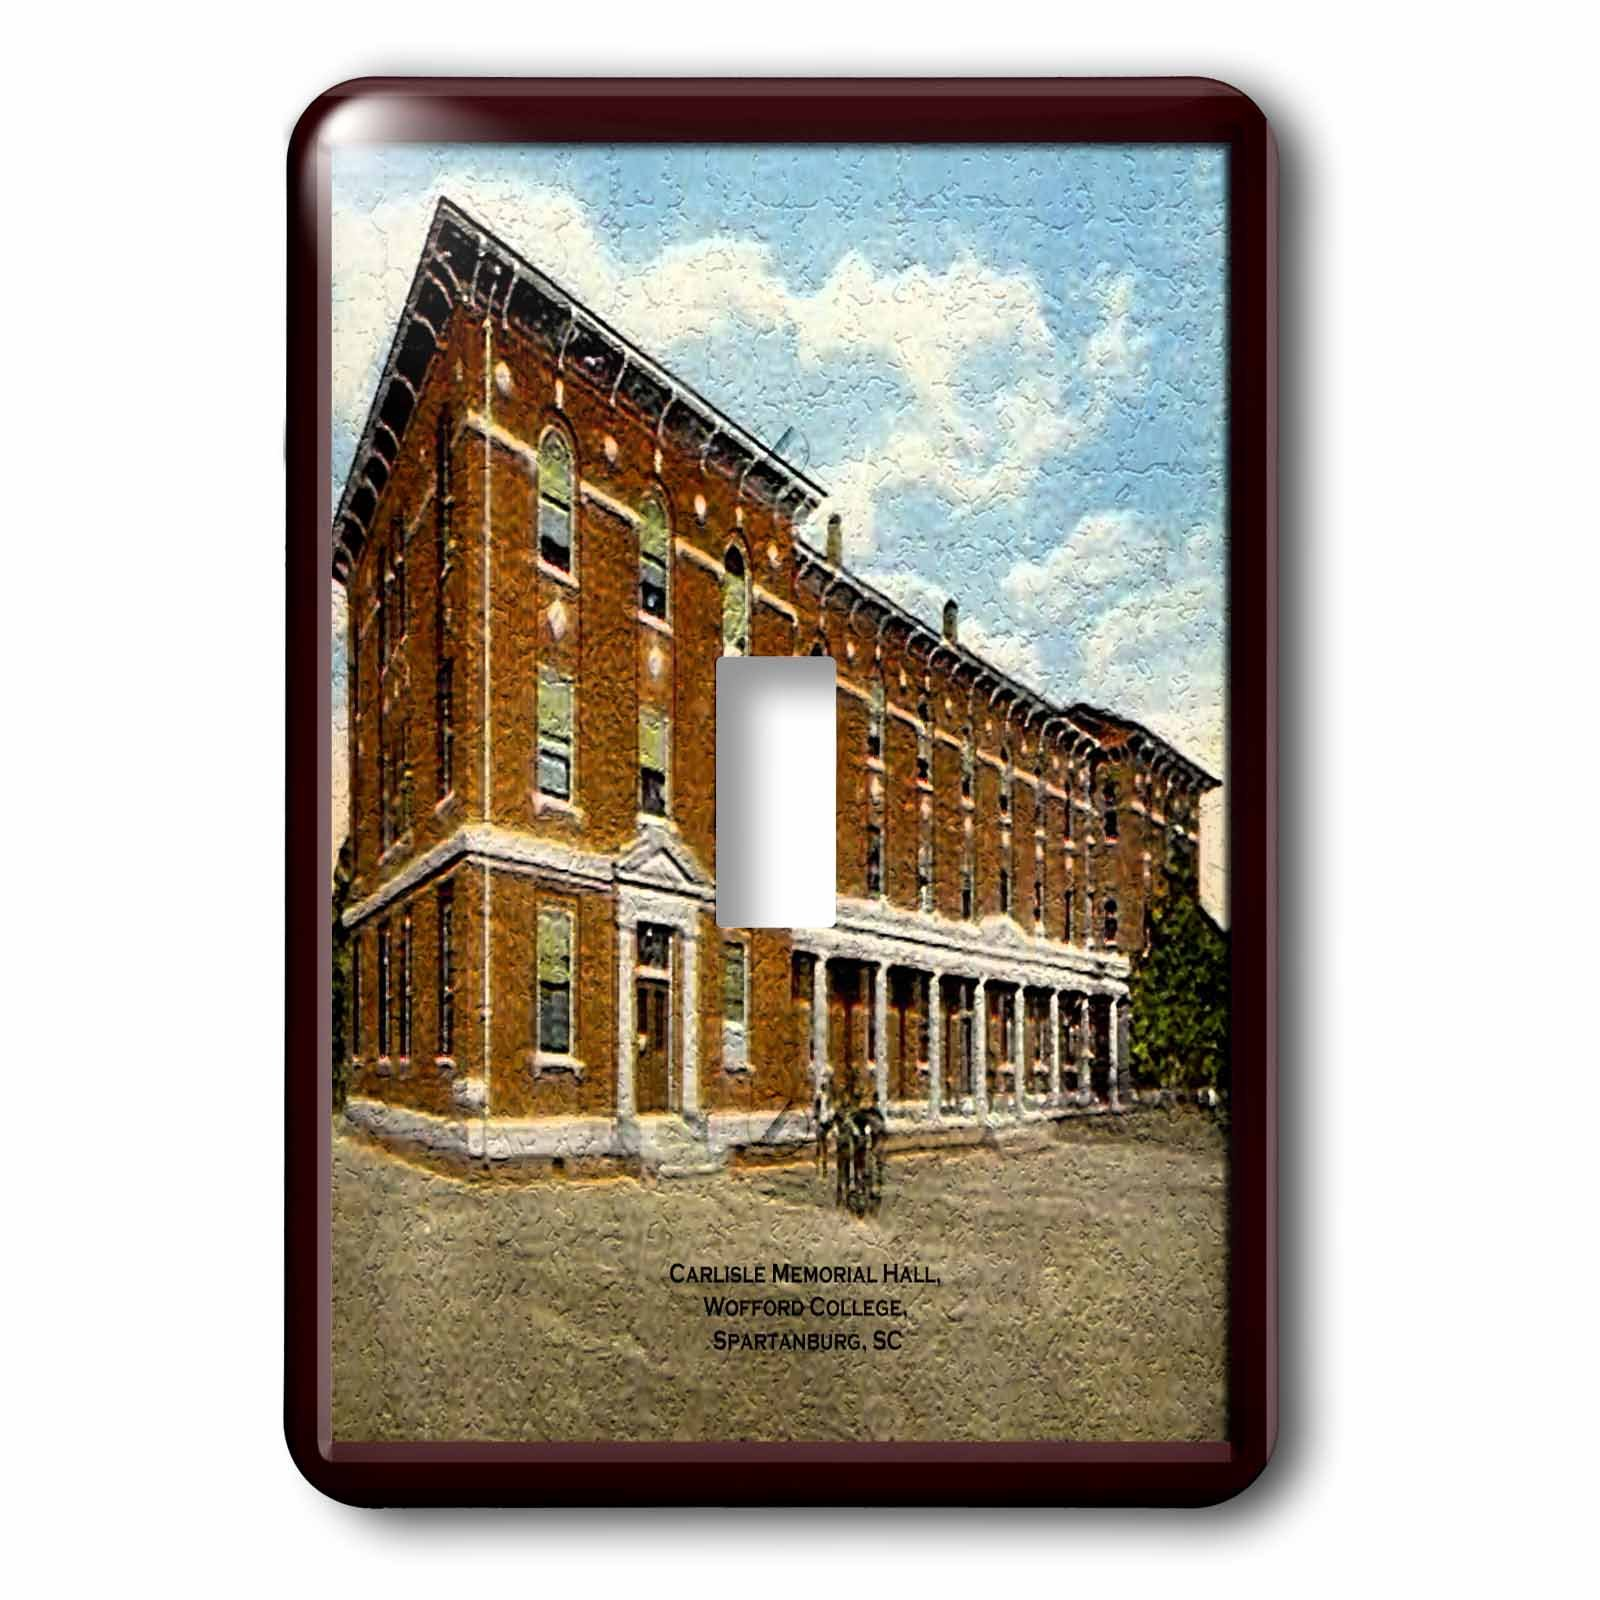 Sandy Mertens South Carolina - Carlisle Memorial Hall, Wofford College, Spartanburg, SC (Vintage) - Light Switch Covers - single toggle switch (lsp_61739_1)